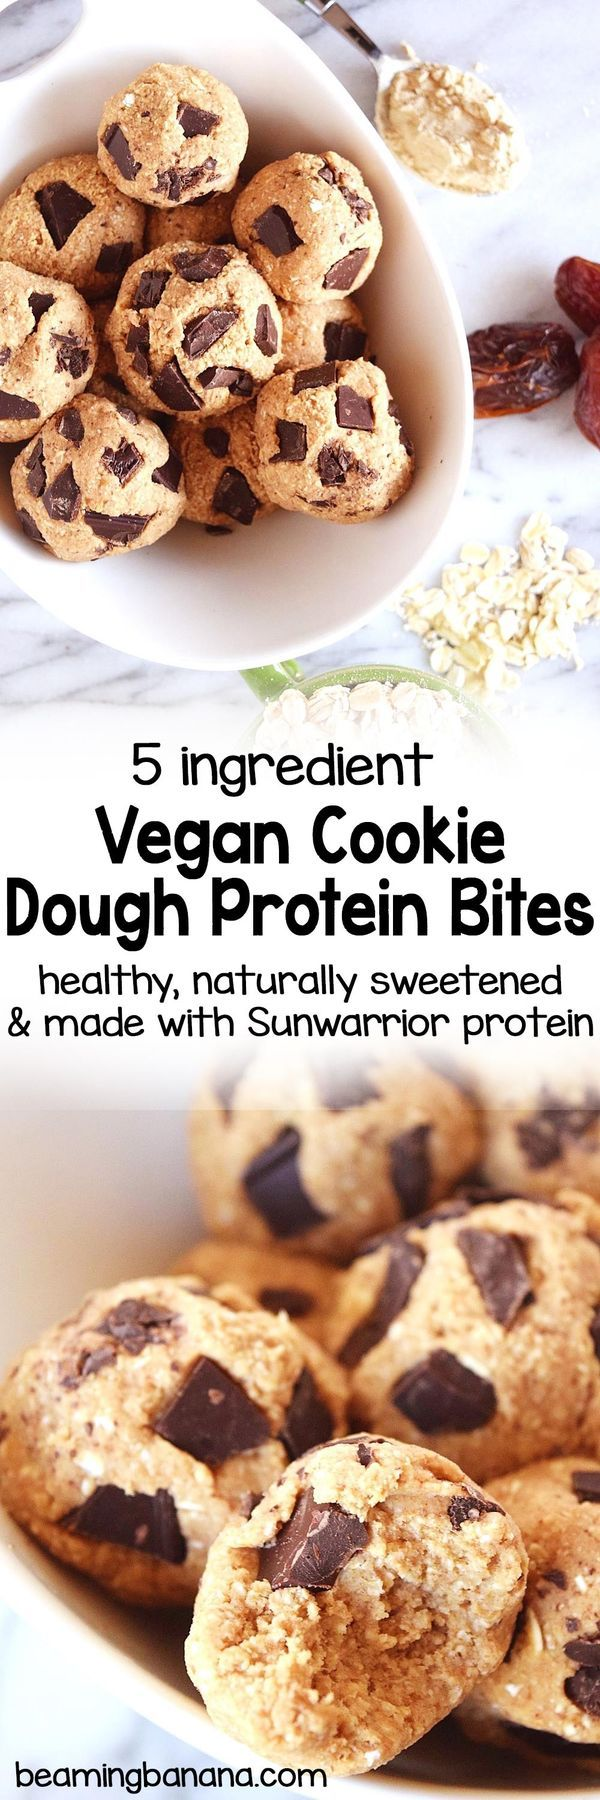 Soft, chewy, no bake vegan cookie dough protein bites! An easy breakfast, snack, or dessert, these cookie dough bites are full of healthy ingredients and plant-based Sunwarrior protein!